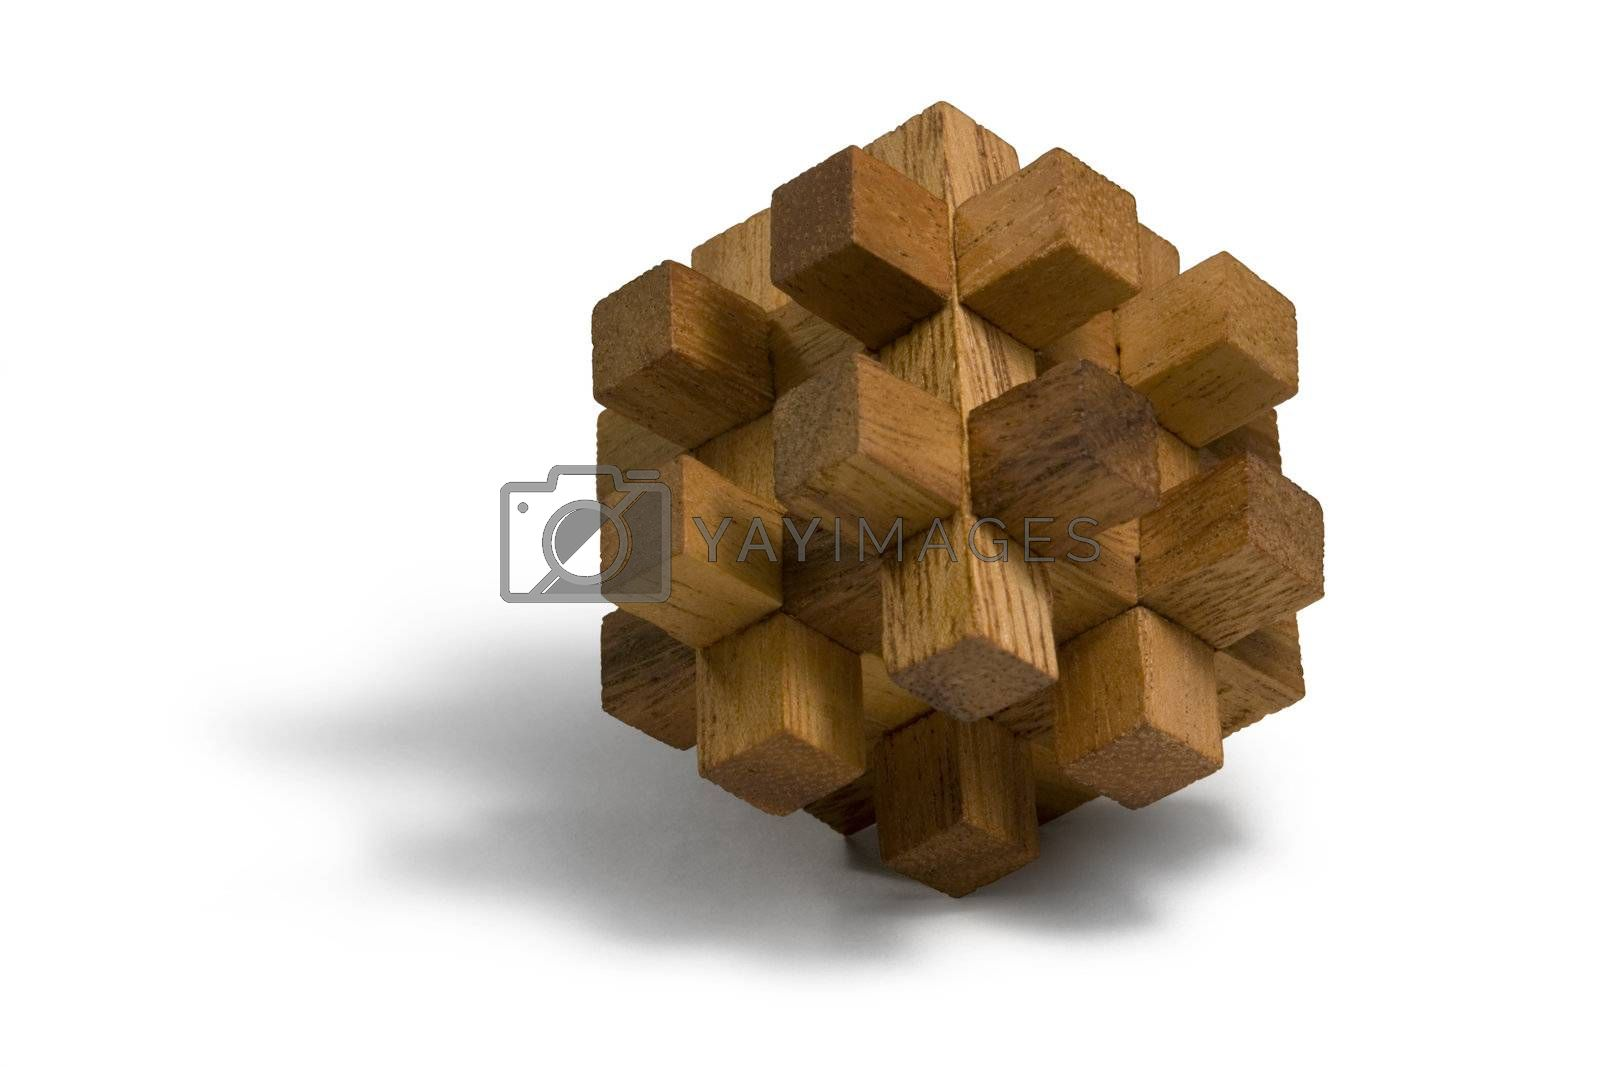 studio photography of a wooden 3D-puzzle in white back